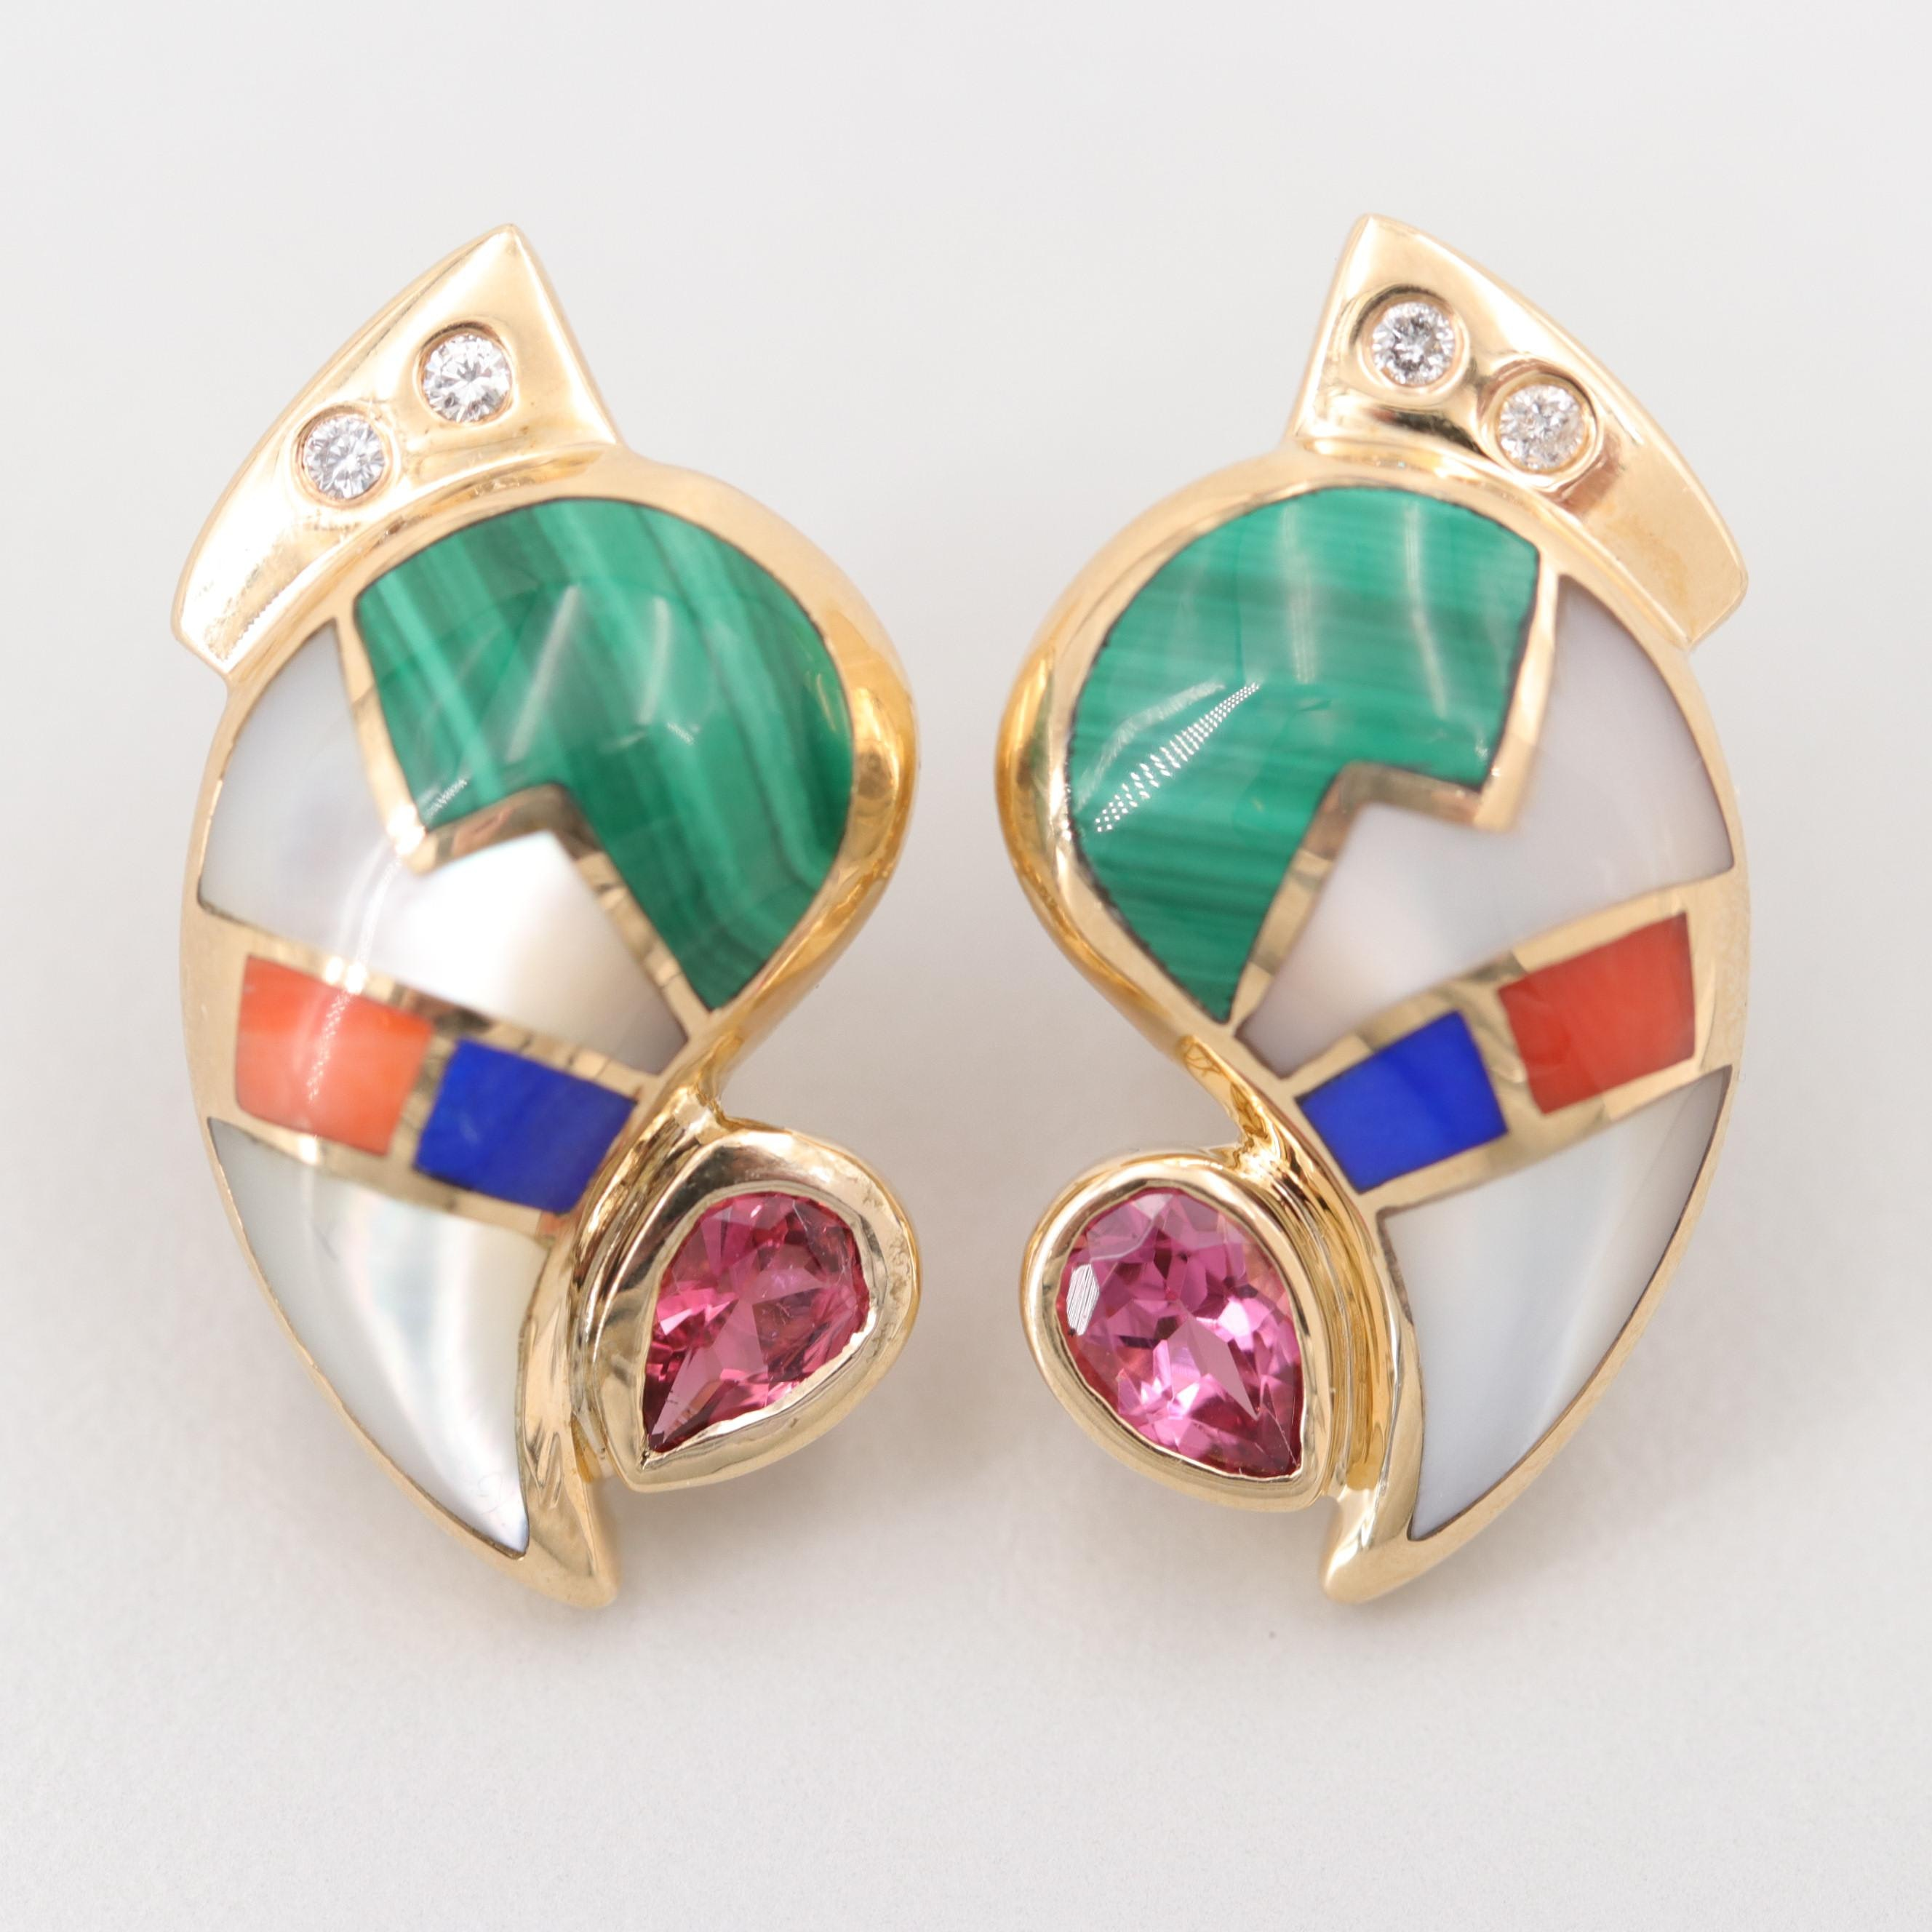 14K Yellow Gold Tourmaline, Diamond and Malachite Inlay Earrings